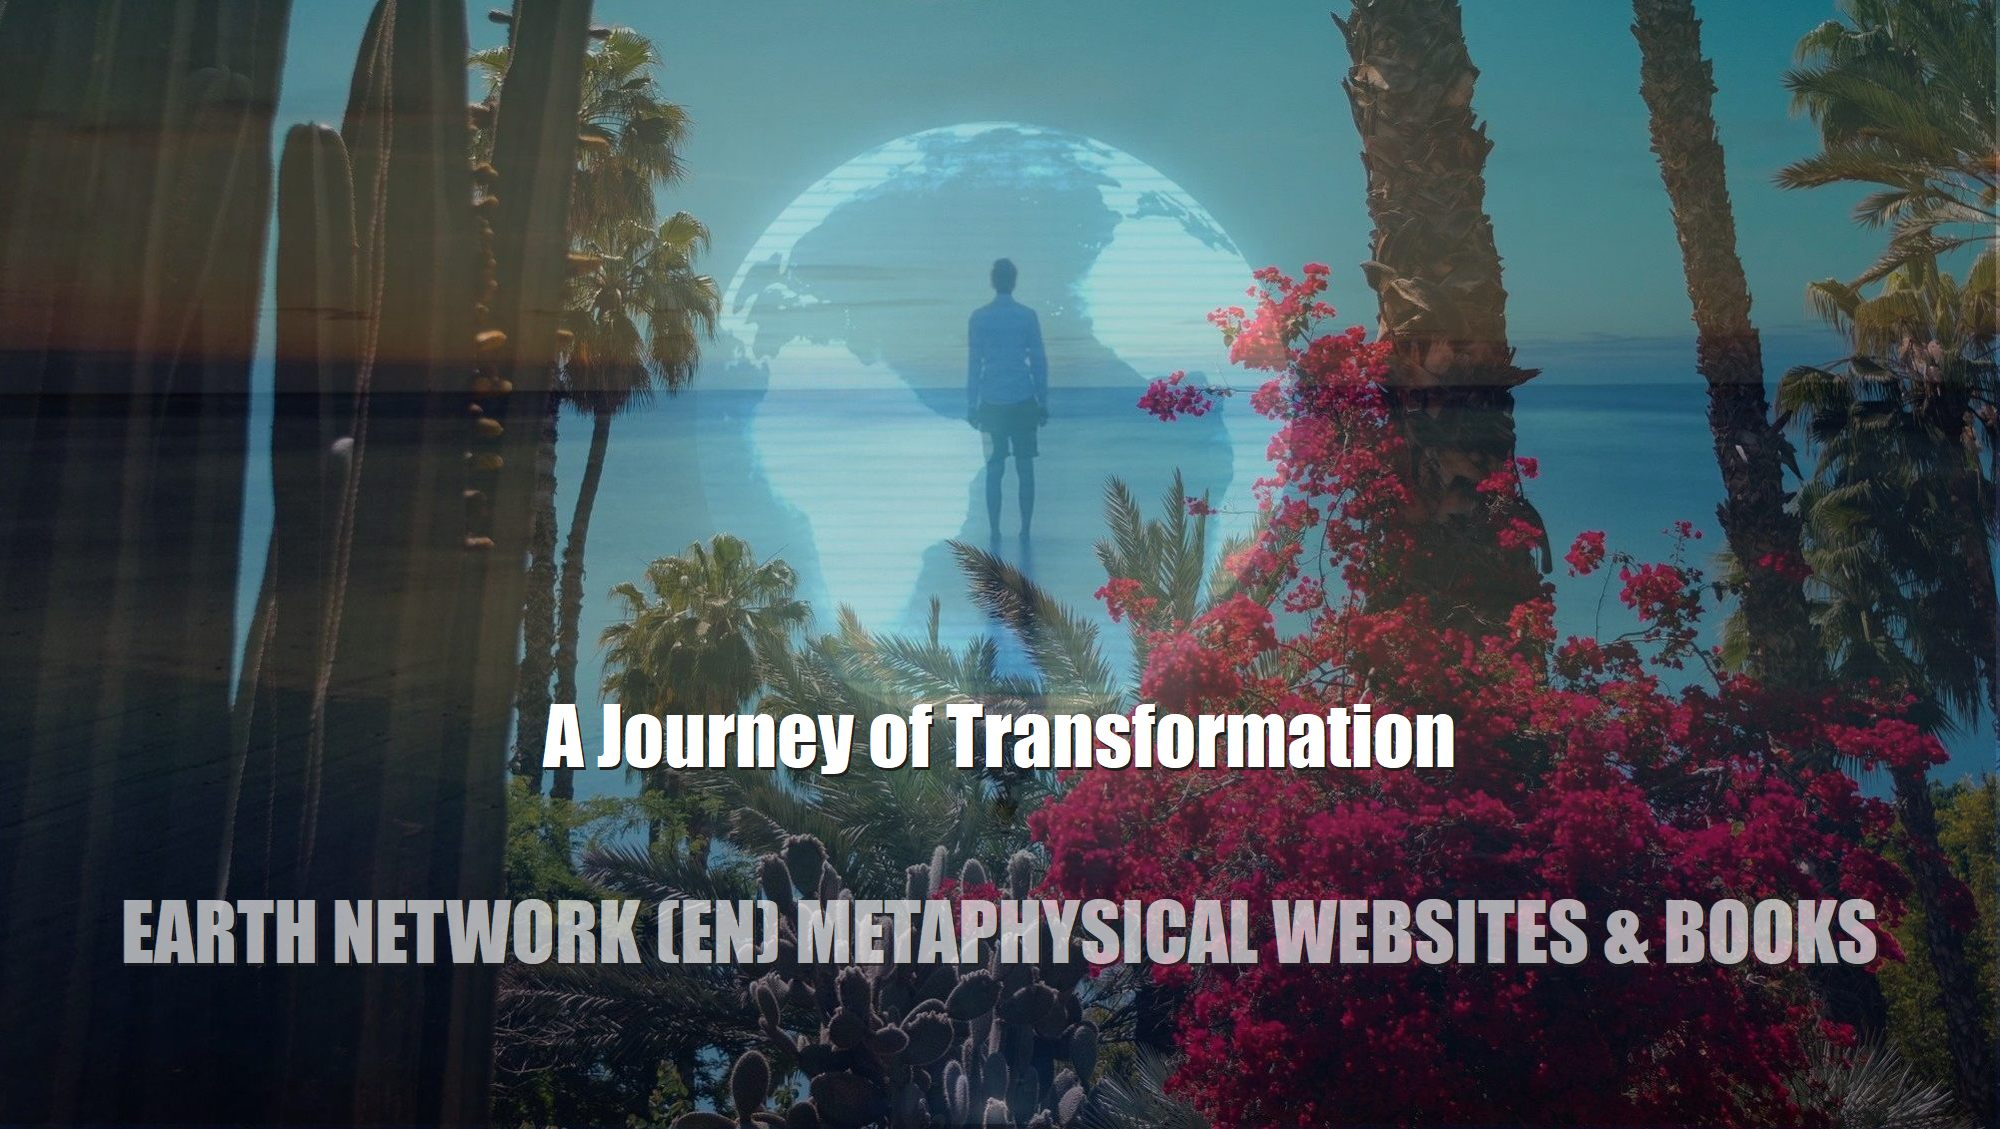 metaphysical-website-list-online-bookstore-age-of-new-spiritual-awareness-books-for-dummies-beginners-paradise